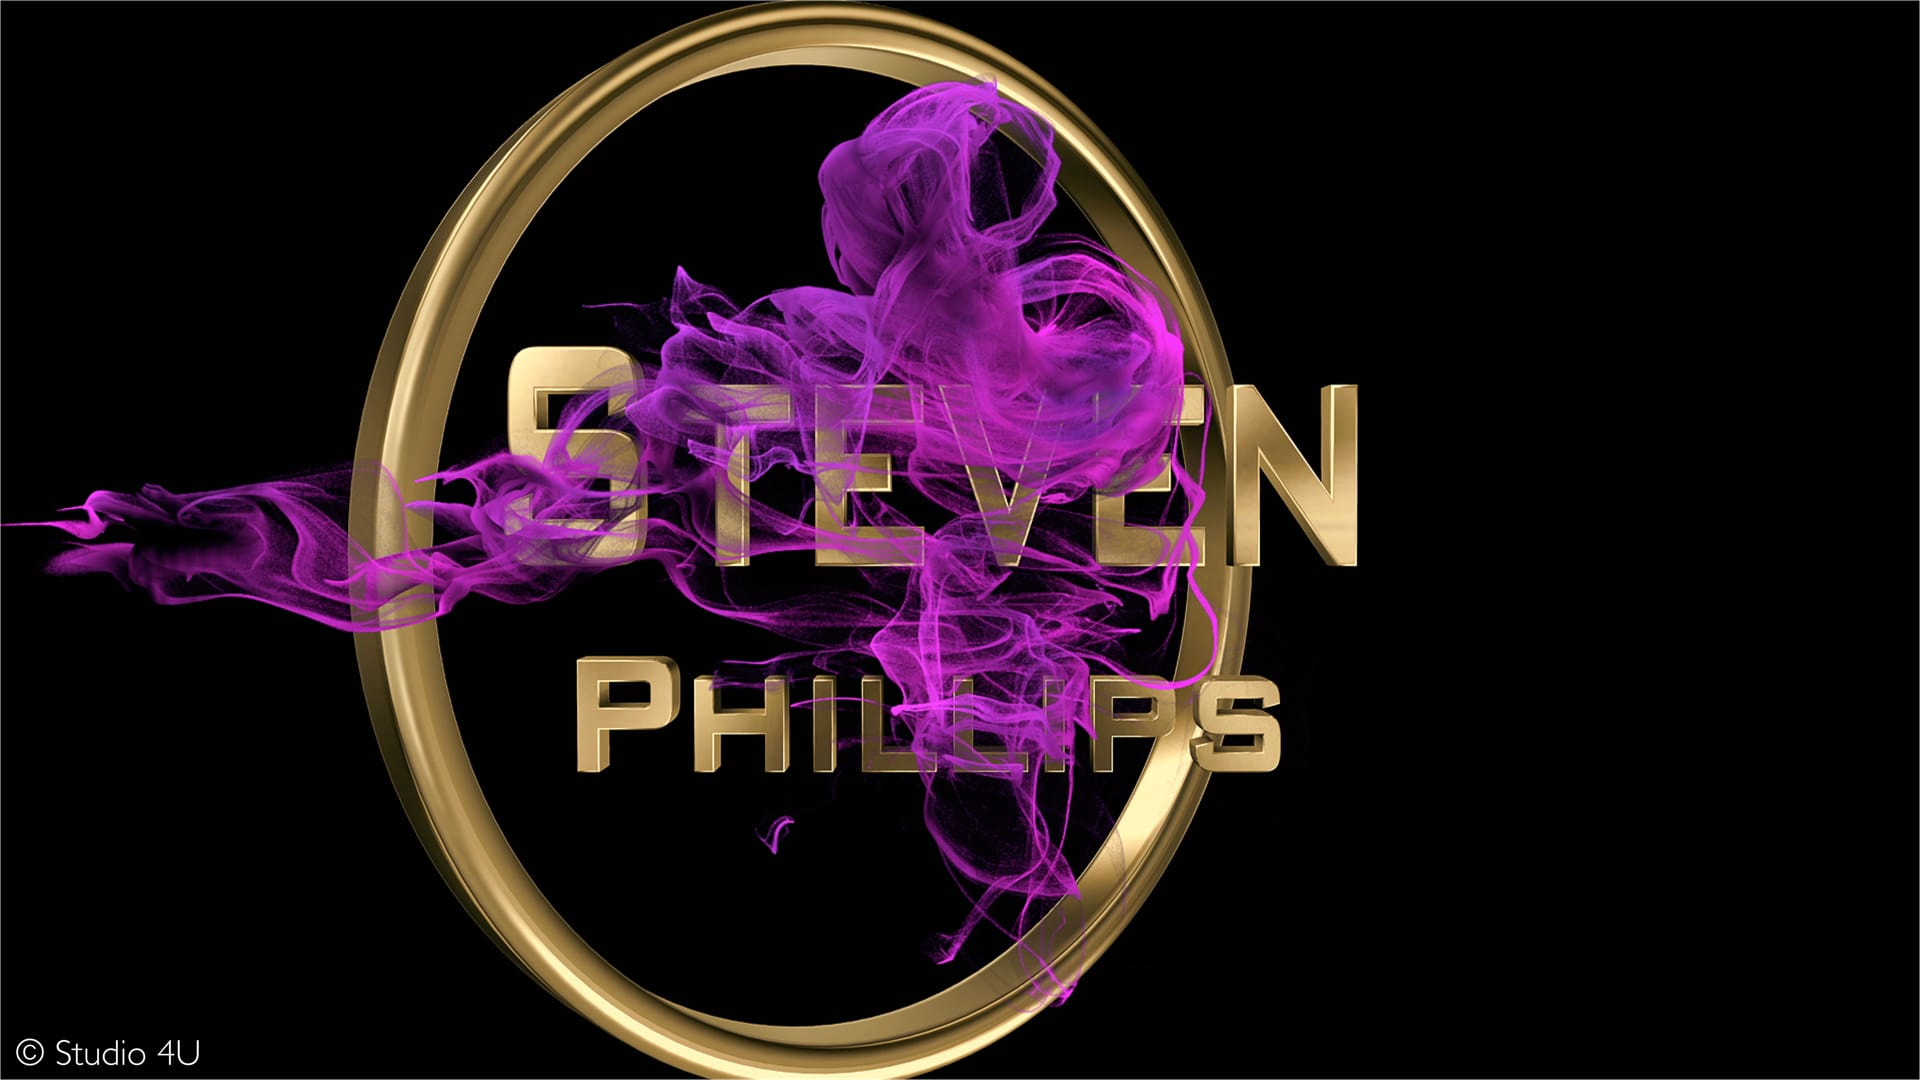 Steven Phillips - The power of music